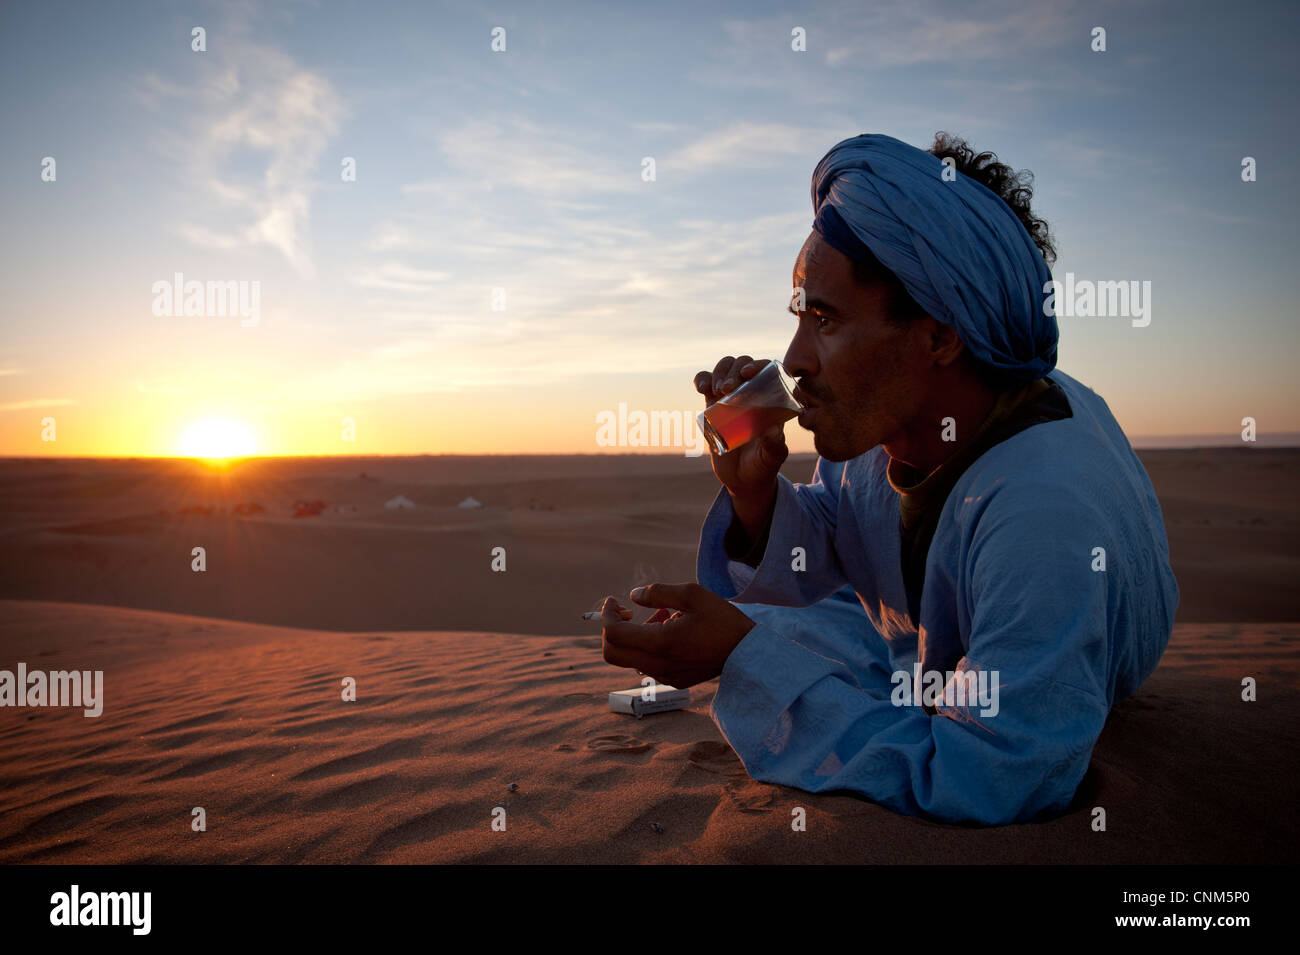 Nomad Berber drinking tea at sunset time in the Sahara Desert, Erg Chigaga, Morocco - Stock Image